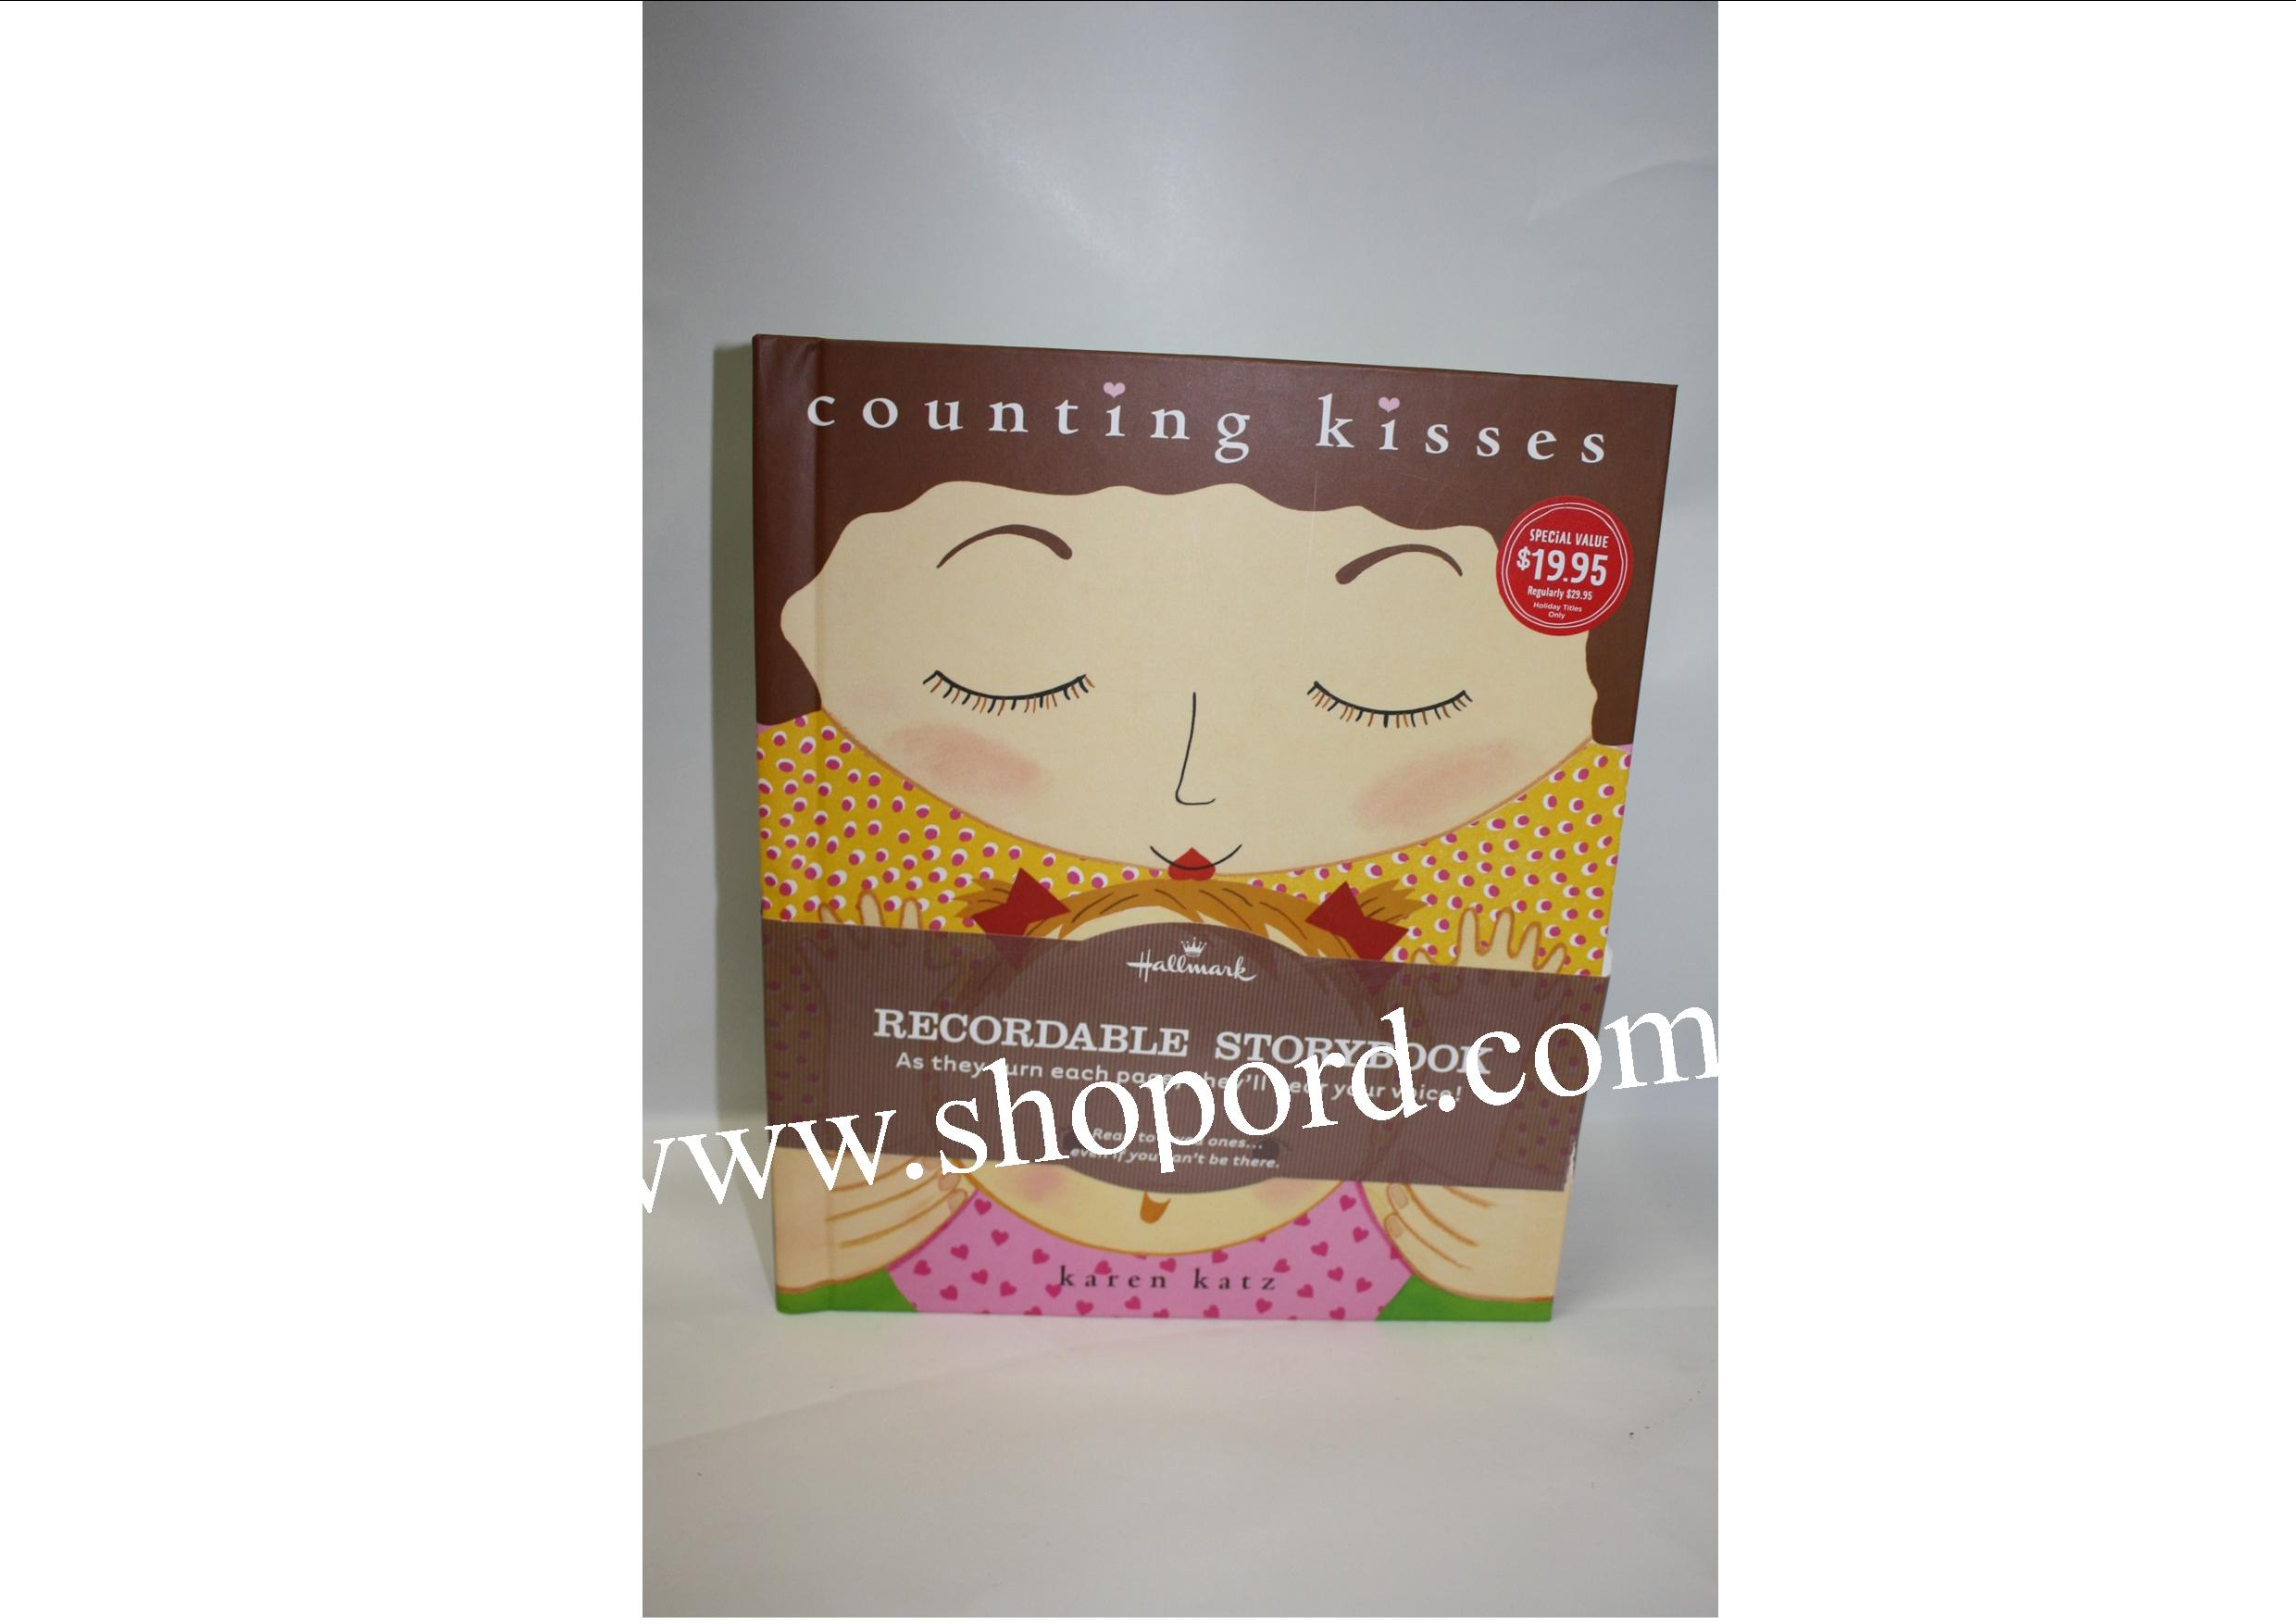 Hallmark Counting Kisses Recordable Storybook KOB9014